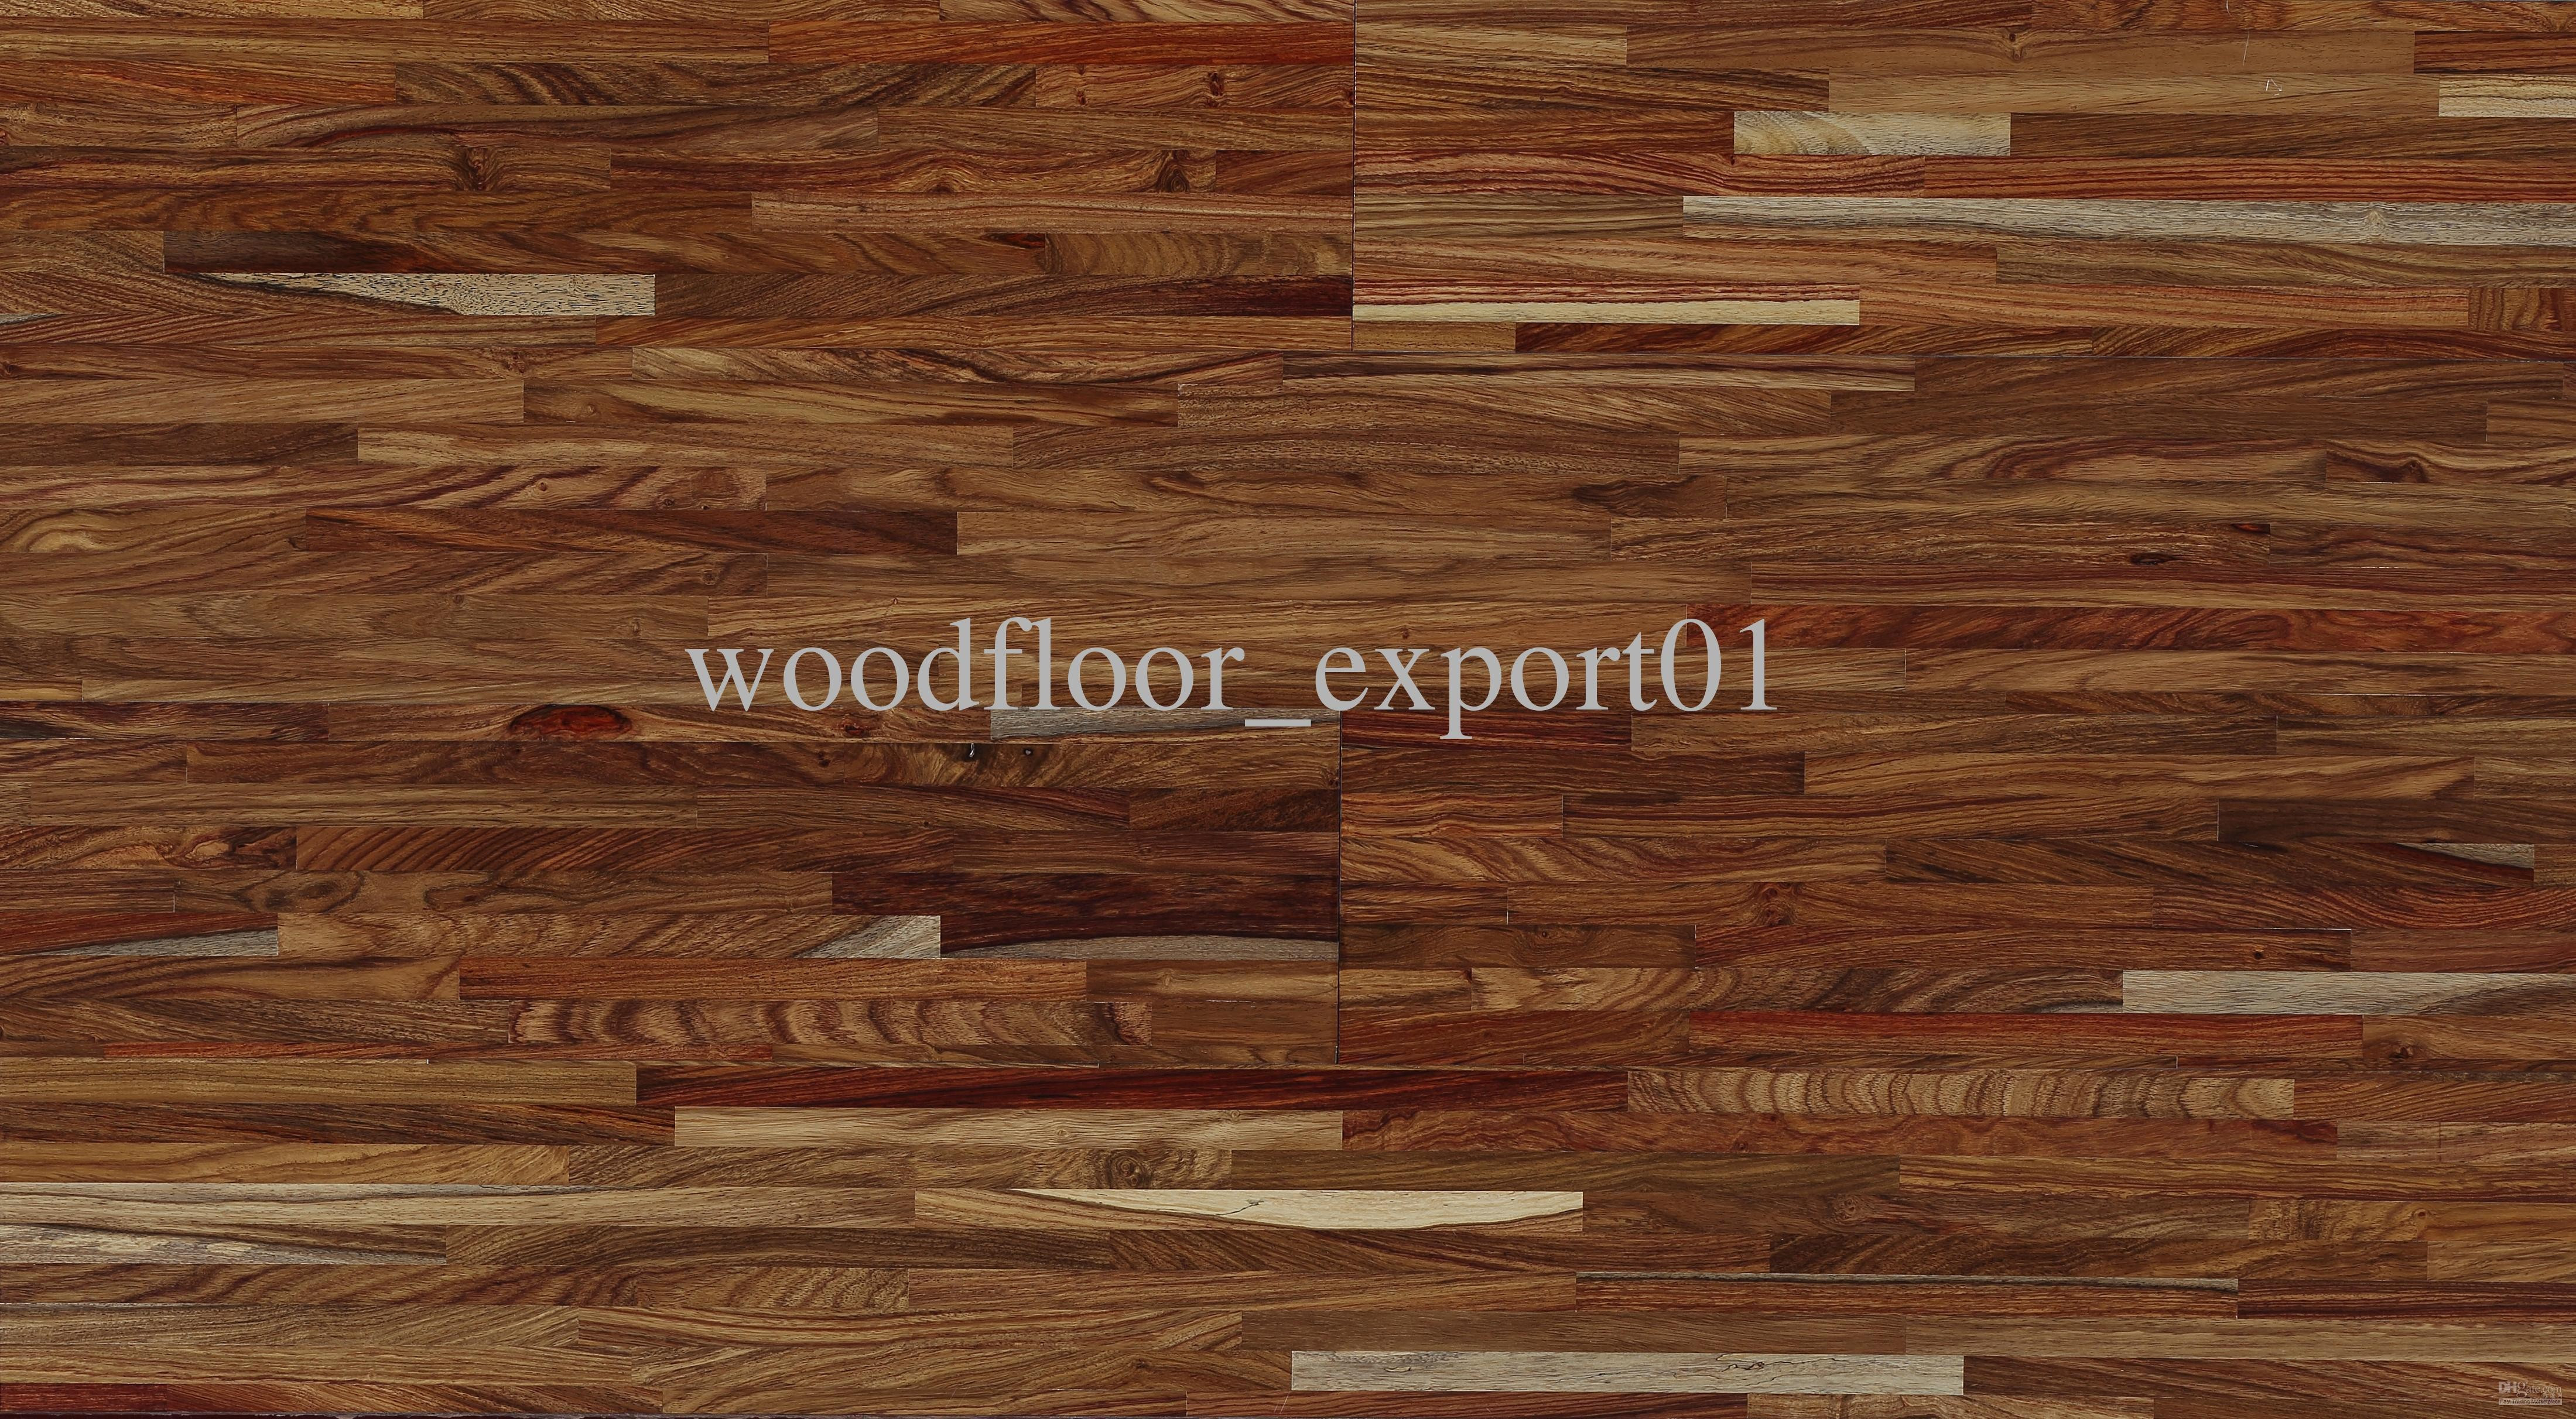 engineered hardwood flooring hawaii of buy wood flooring hardwood plank flooring floor plan ideas within engineered buy wood flooring where to buy hardwood flooring inspirational 0d grace place barnegat